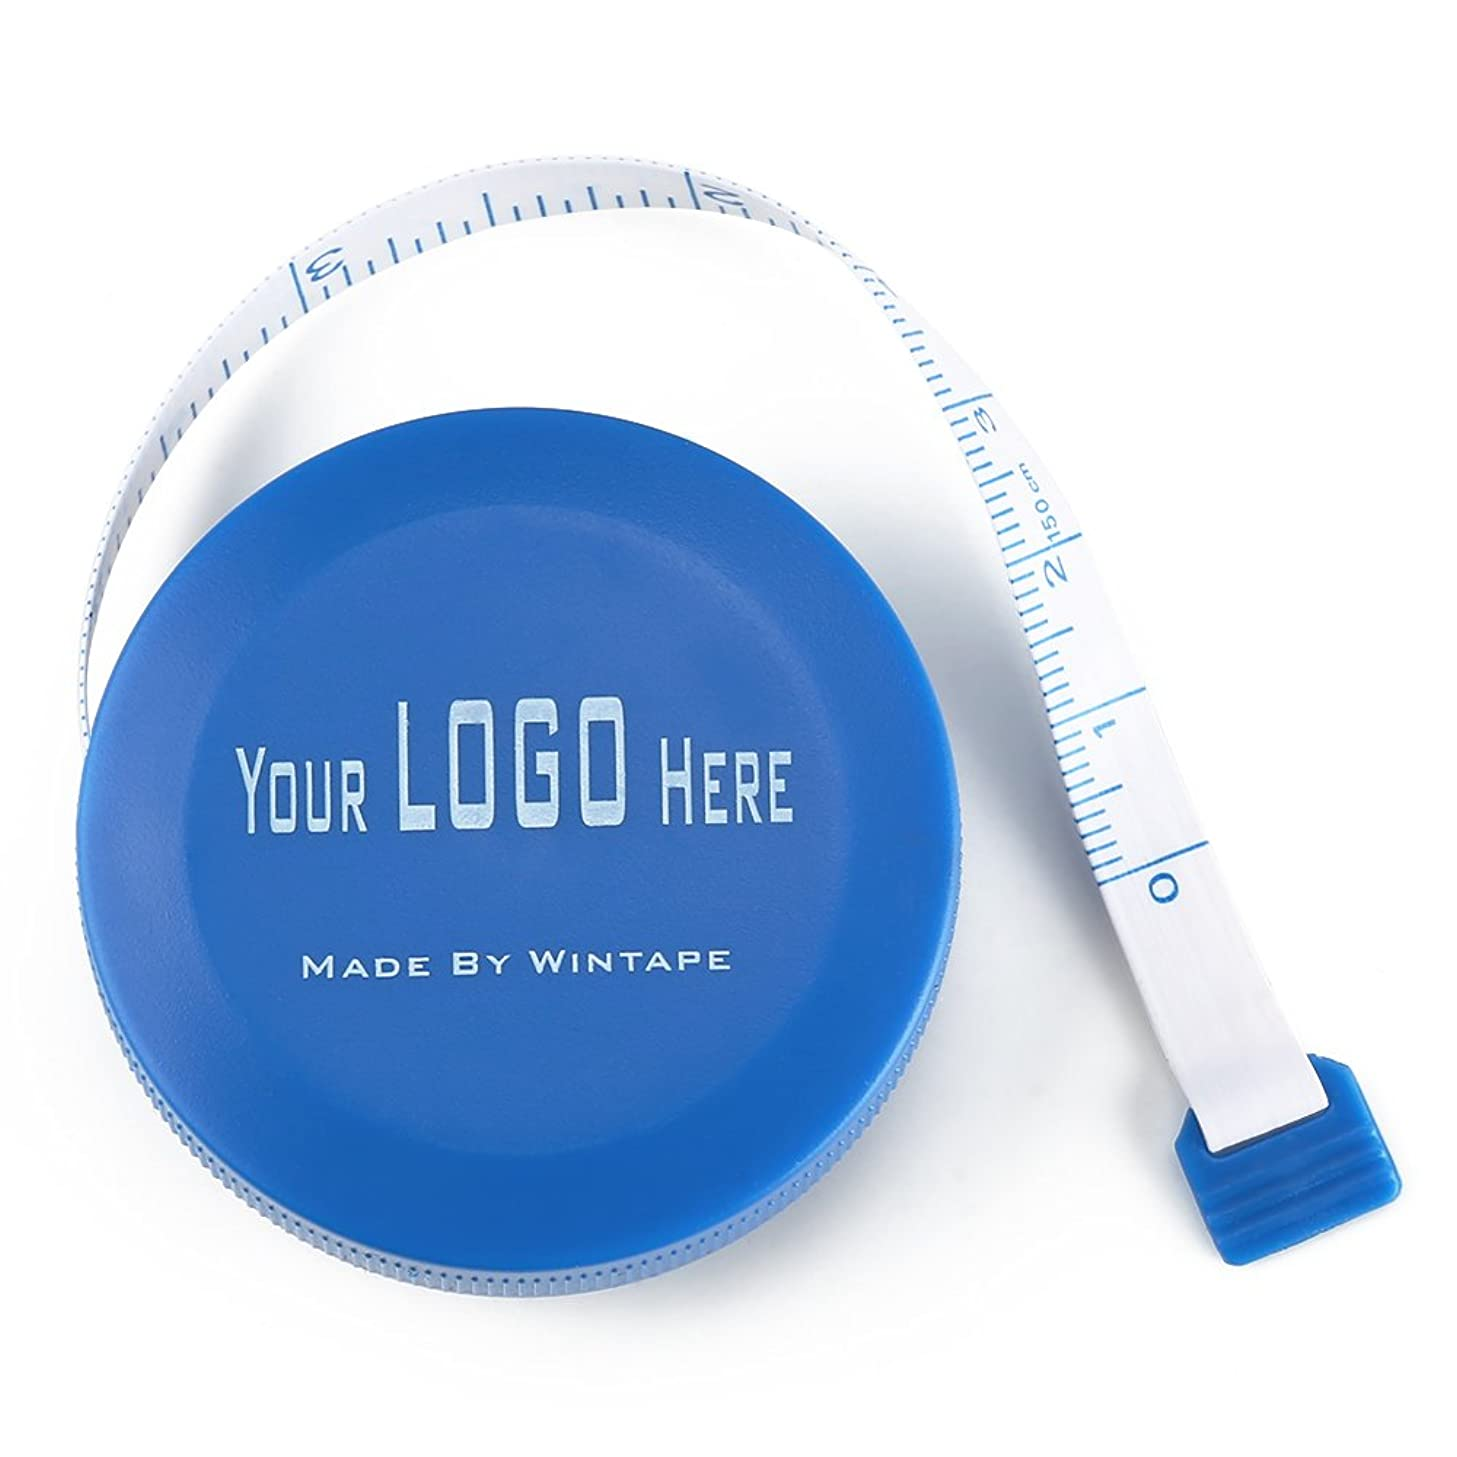 Wintape 3 Pcs Blue Color Retractable Tape Measure Sewing Accessory Set & Gifts of Waist Measuring Tape